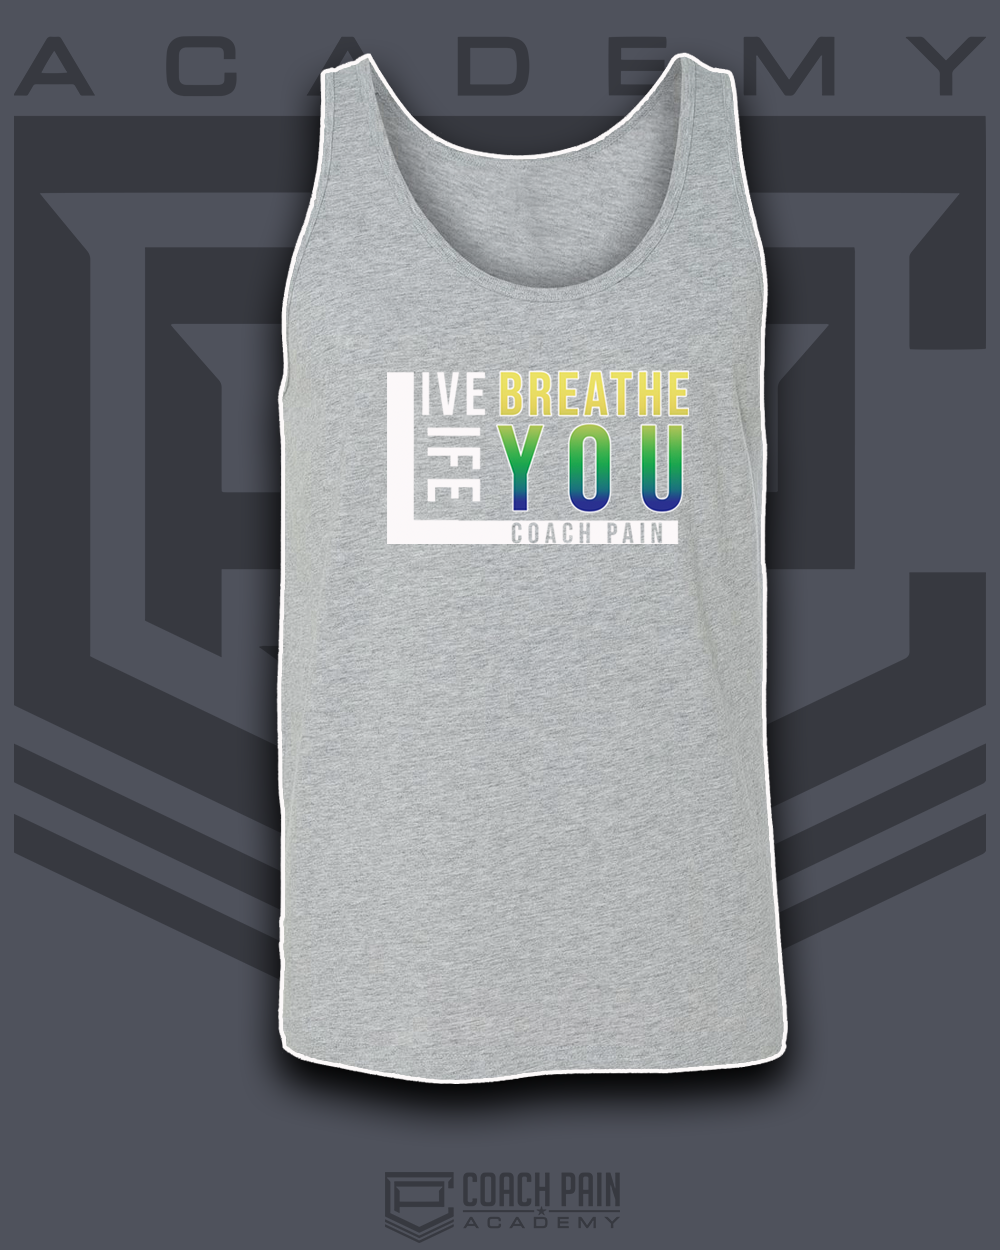 Live Breath Life You Men's Tank